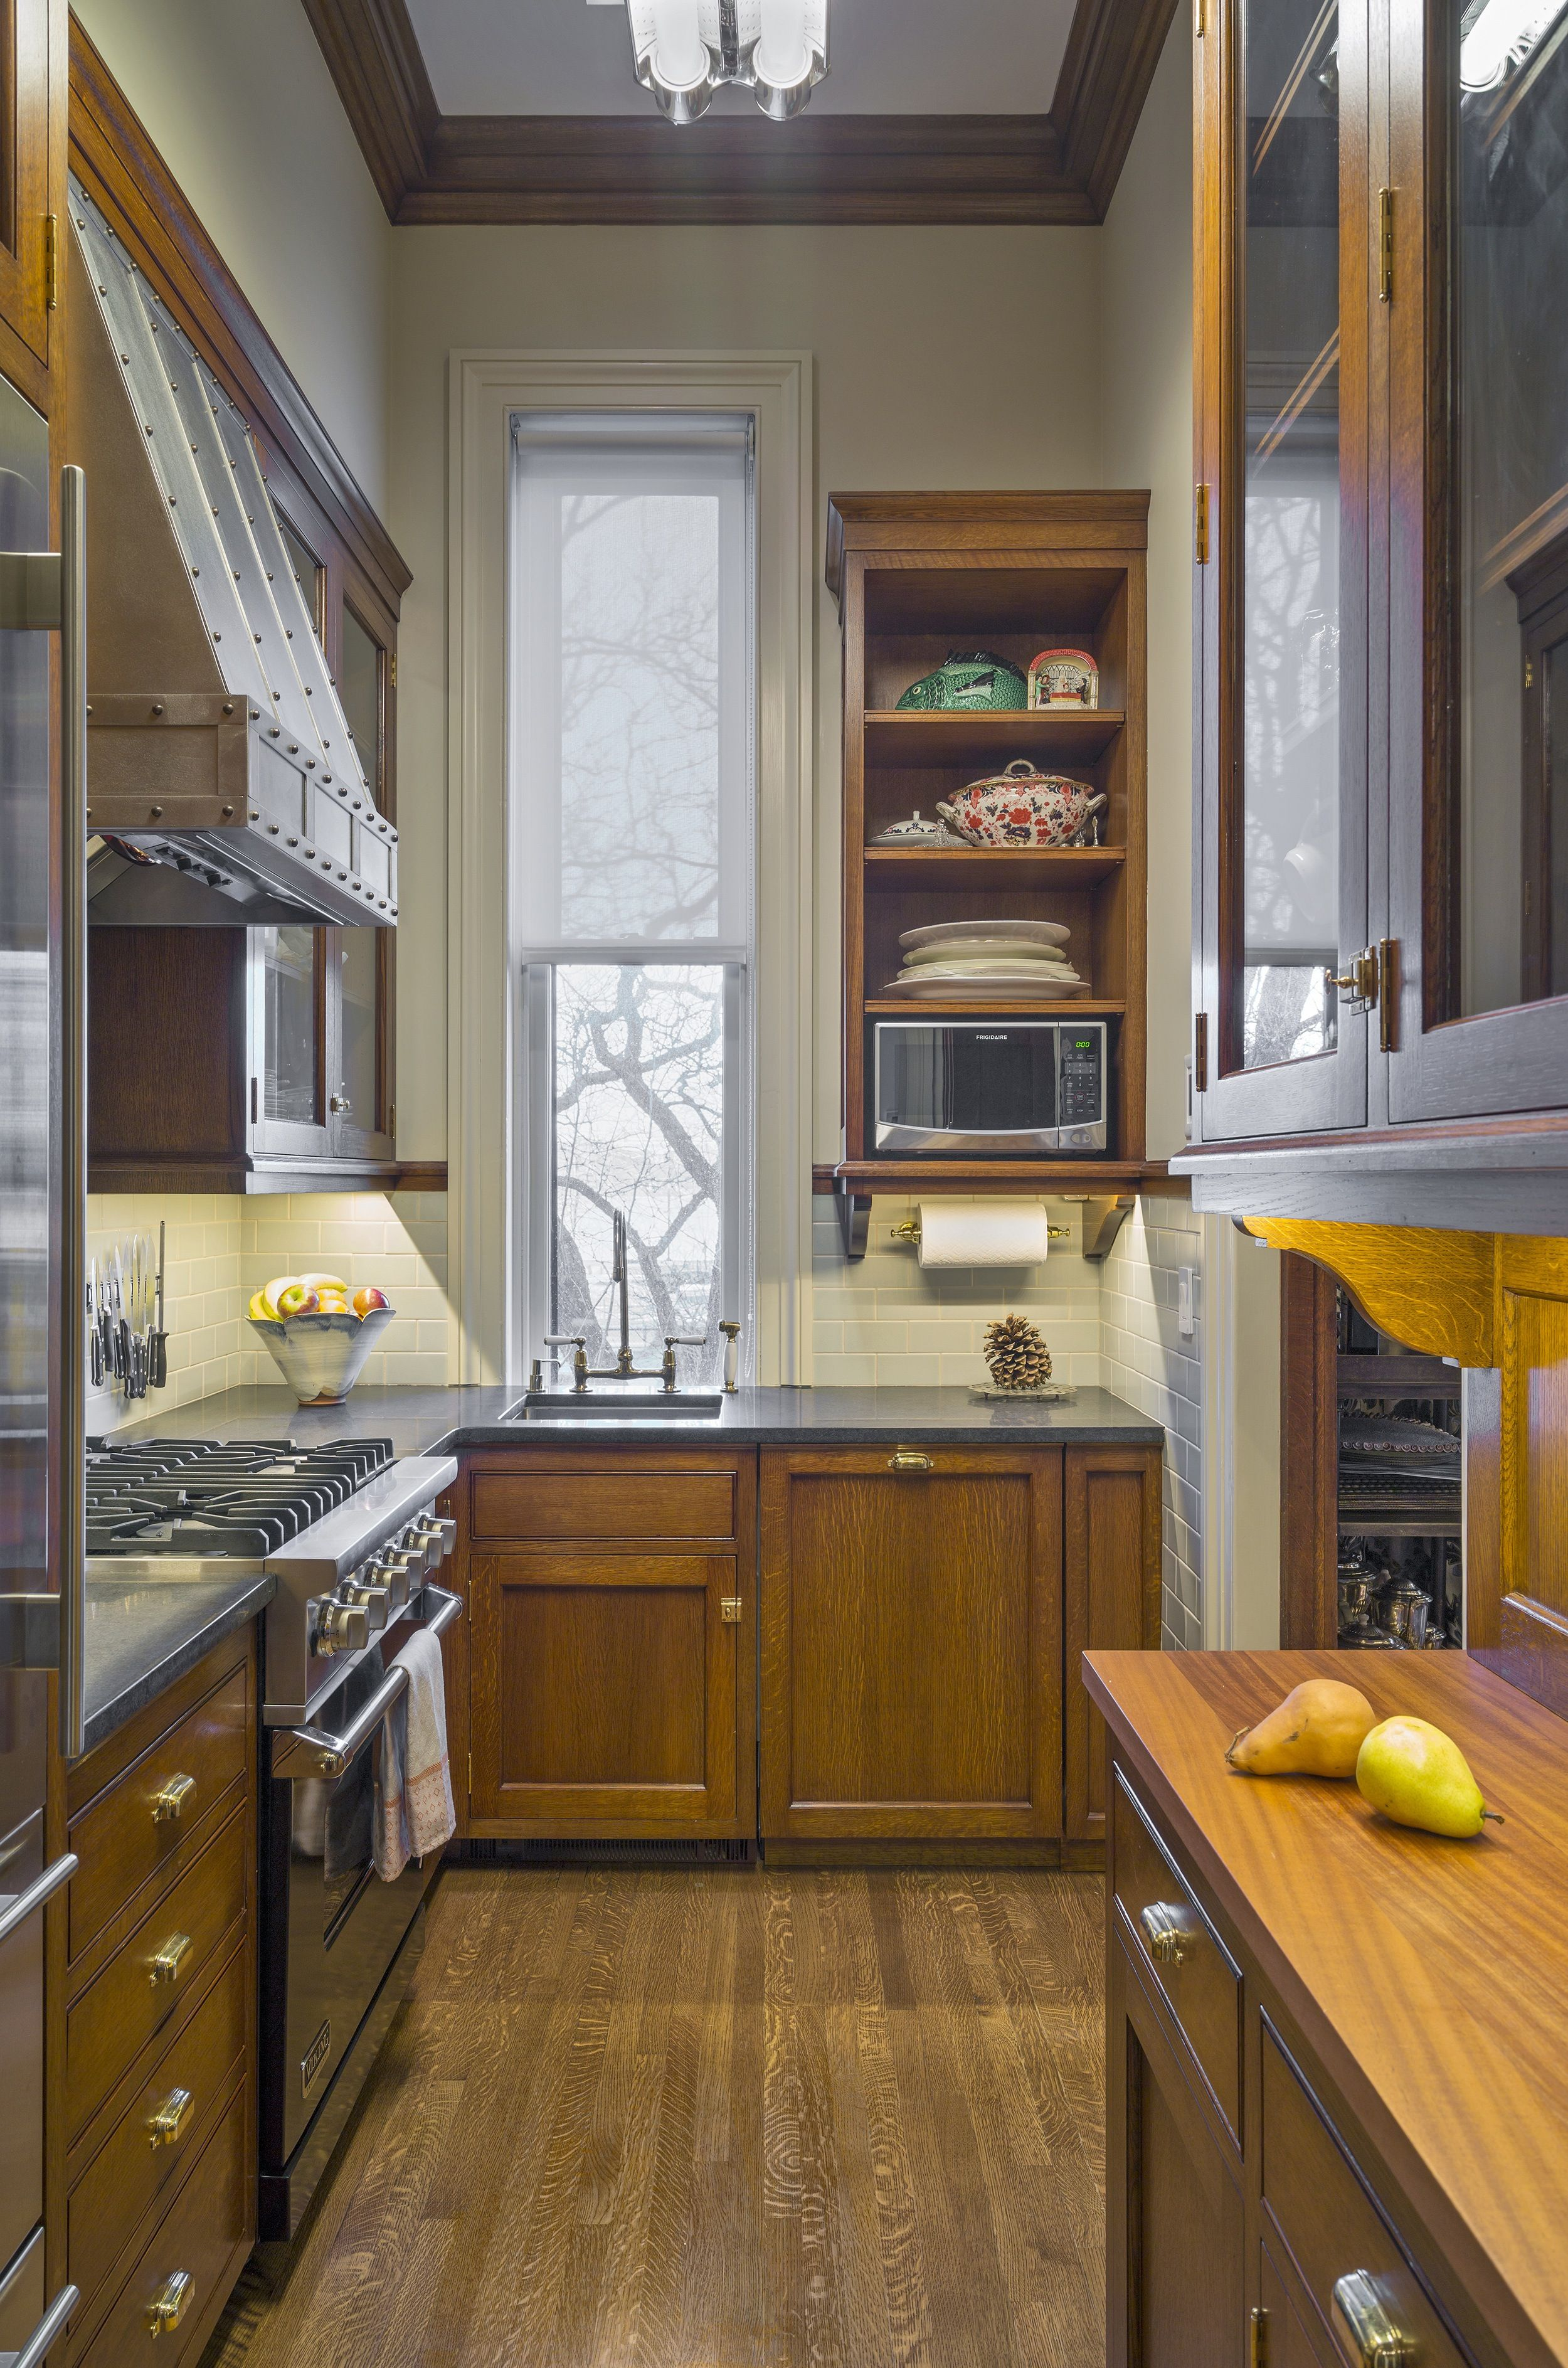 20 sophisticated galley style kitchens kitchen design styles kitchen design small galley on kitchen remodel galley style id=44746